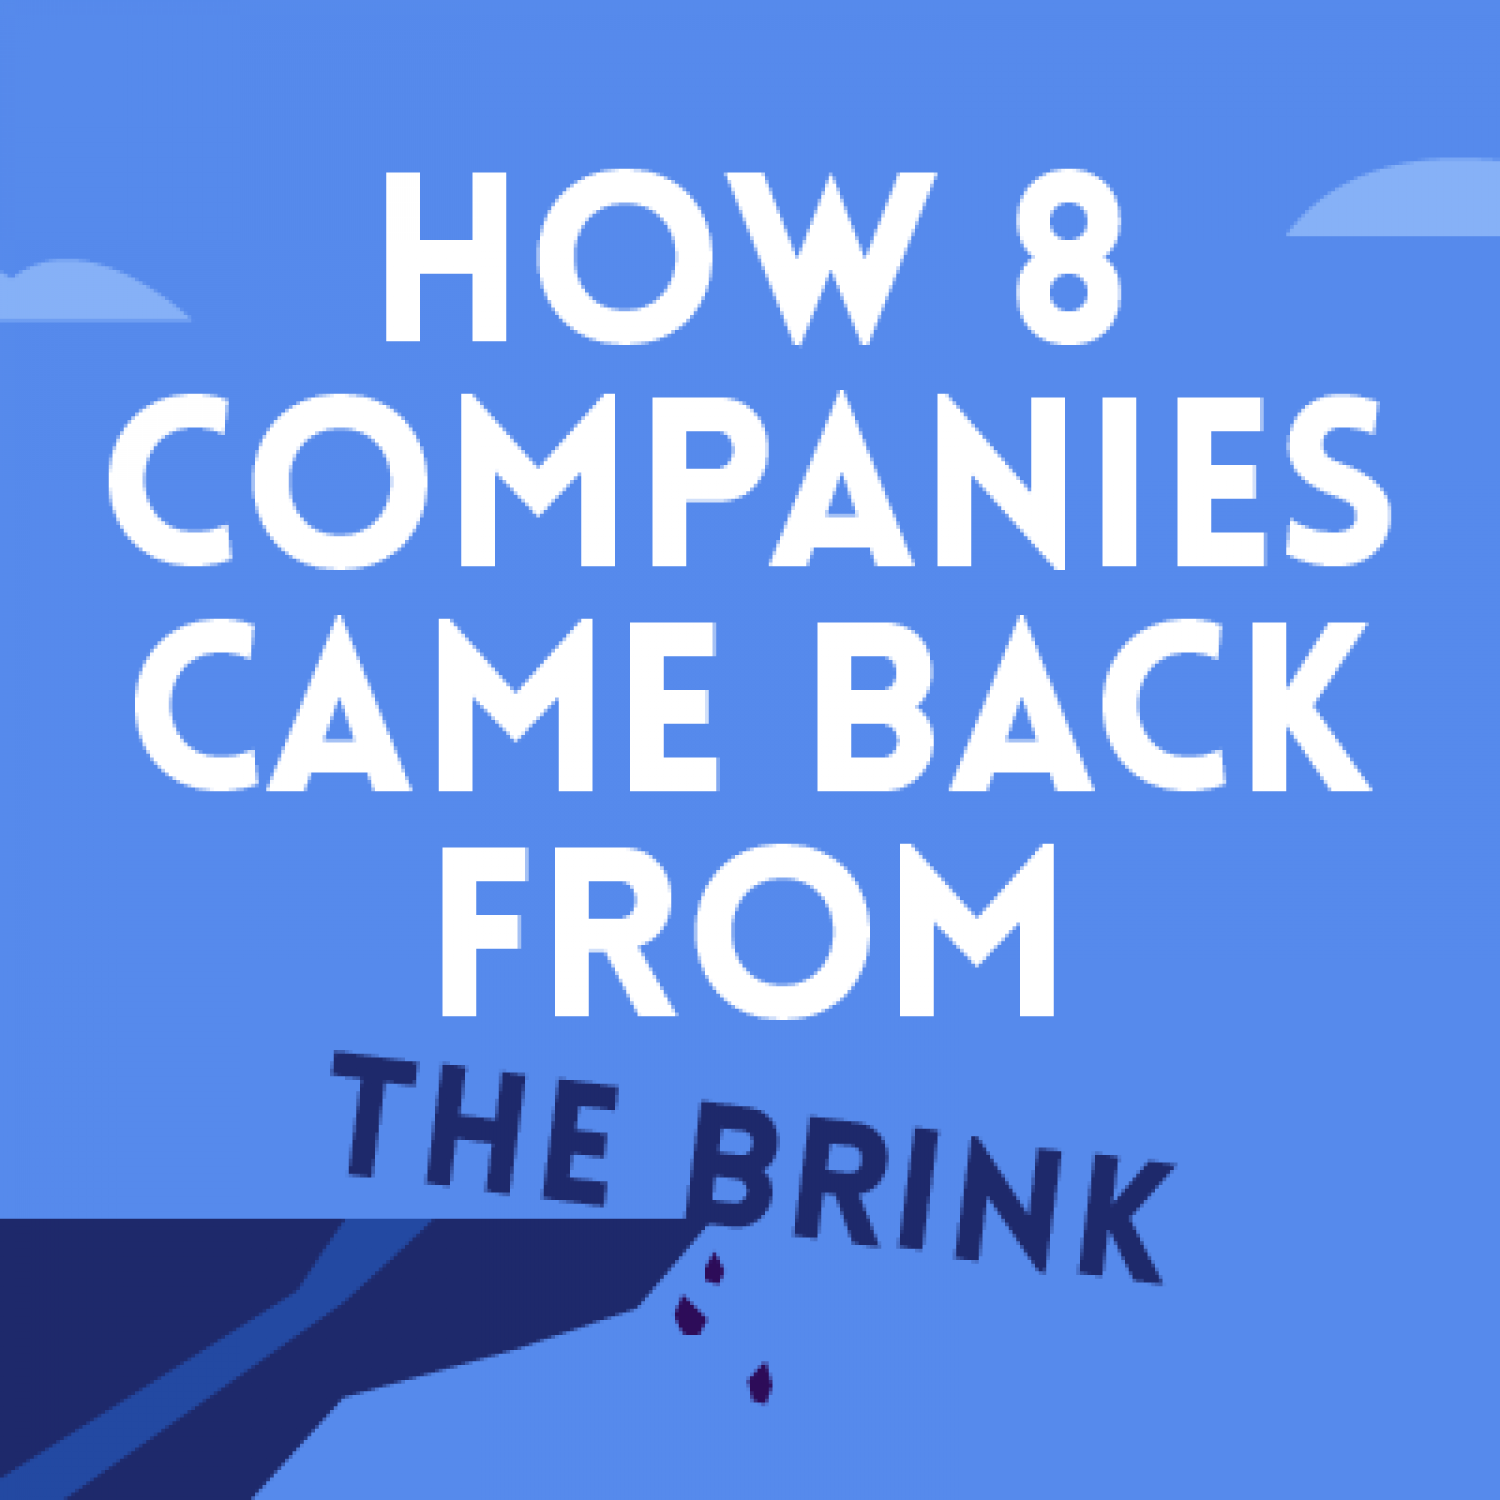 How 8 Companies Came Back From the Brink Infographic